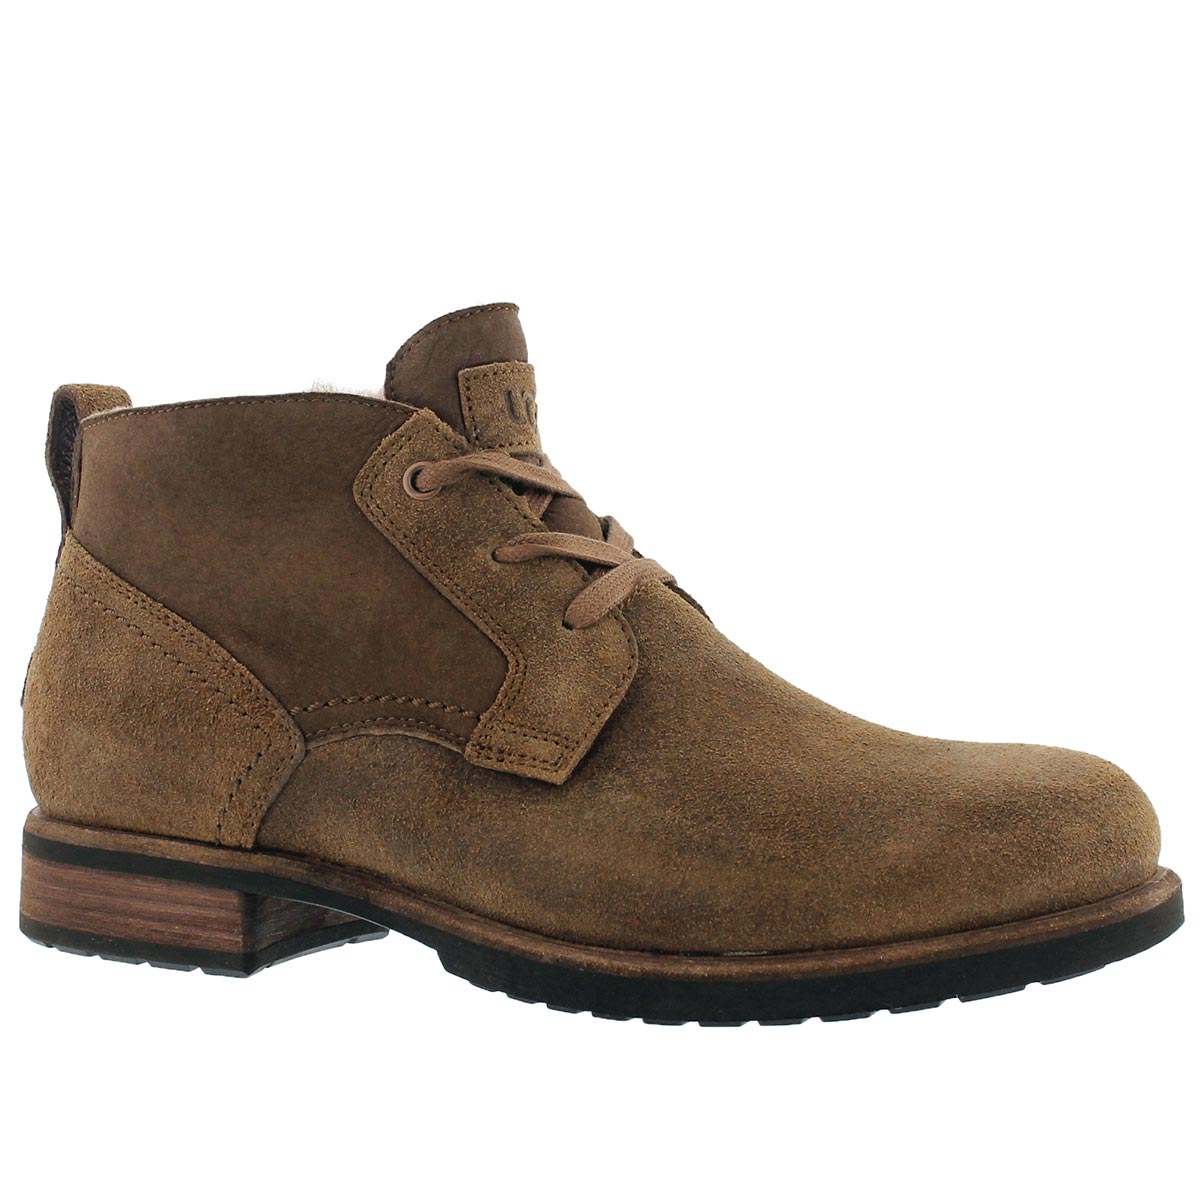 Men's BROMPTON chestnut lace up chukka boots